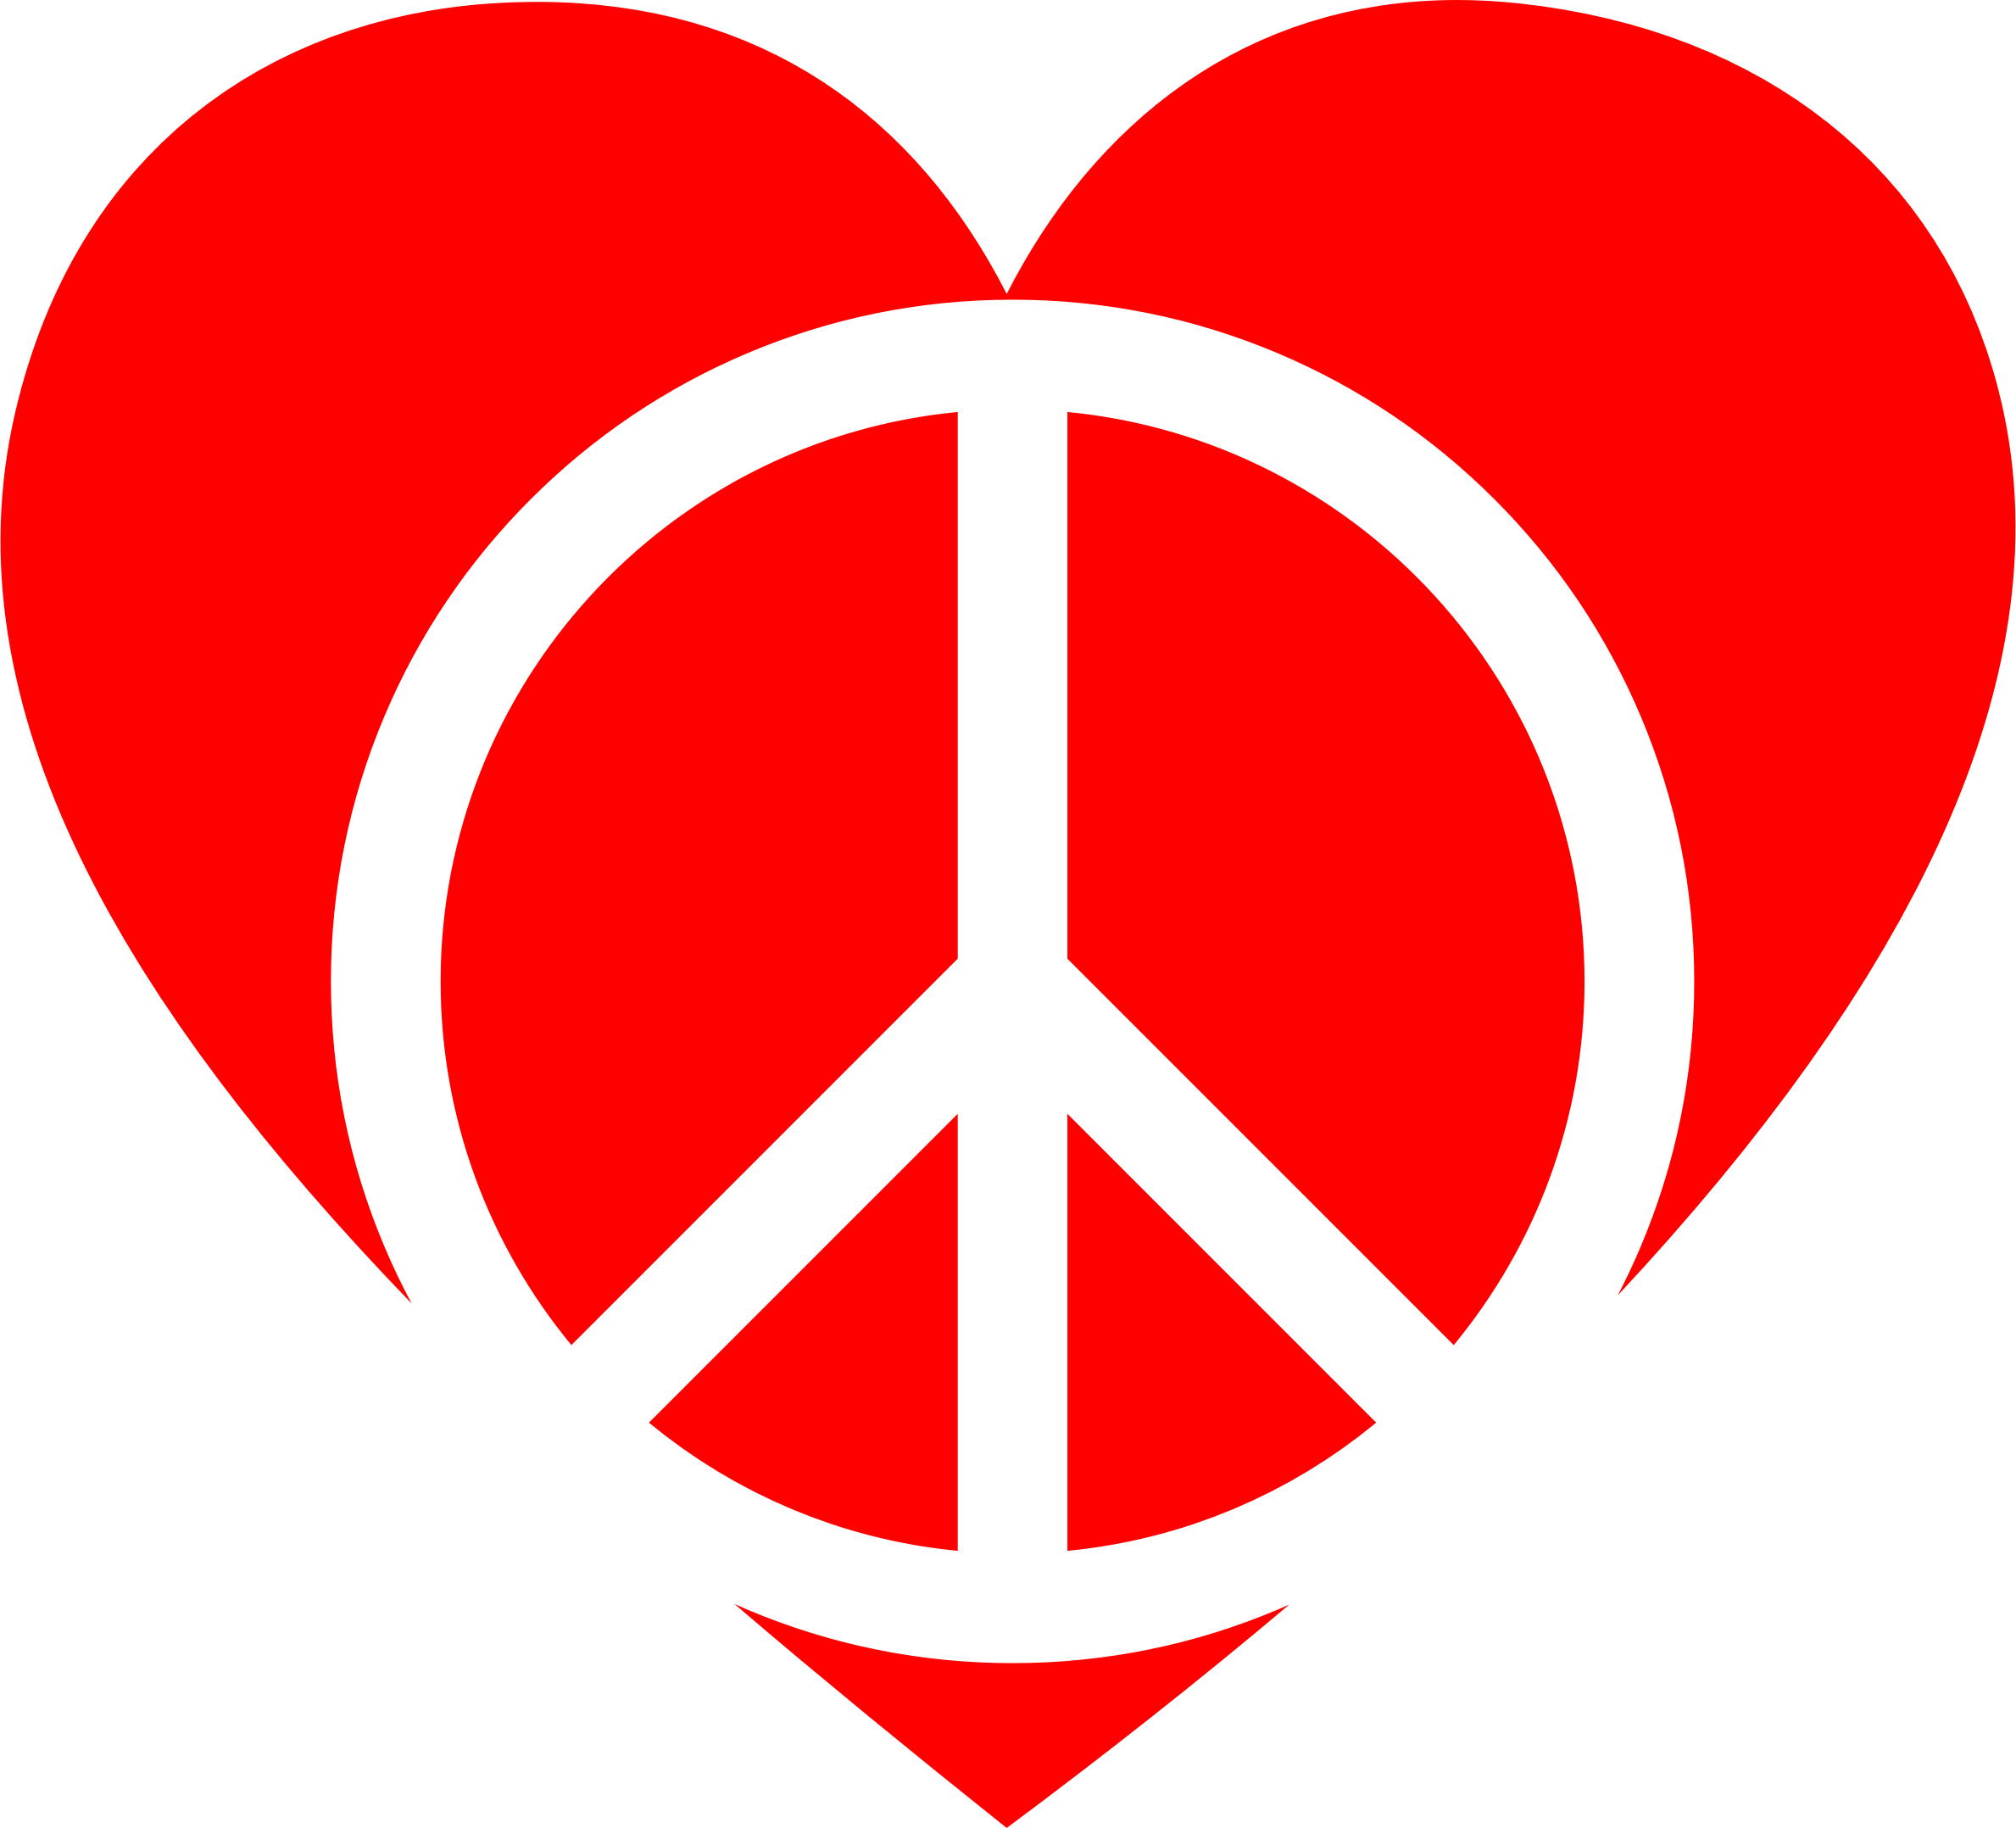 Peace Sign clipart red (PNG) Peace Heart Clipart Red